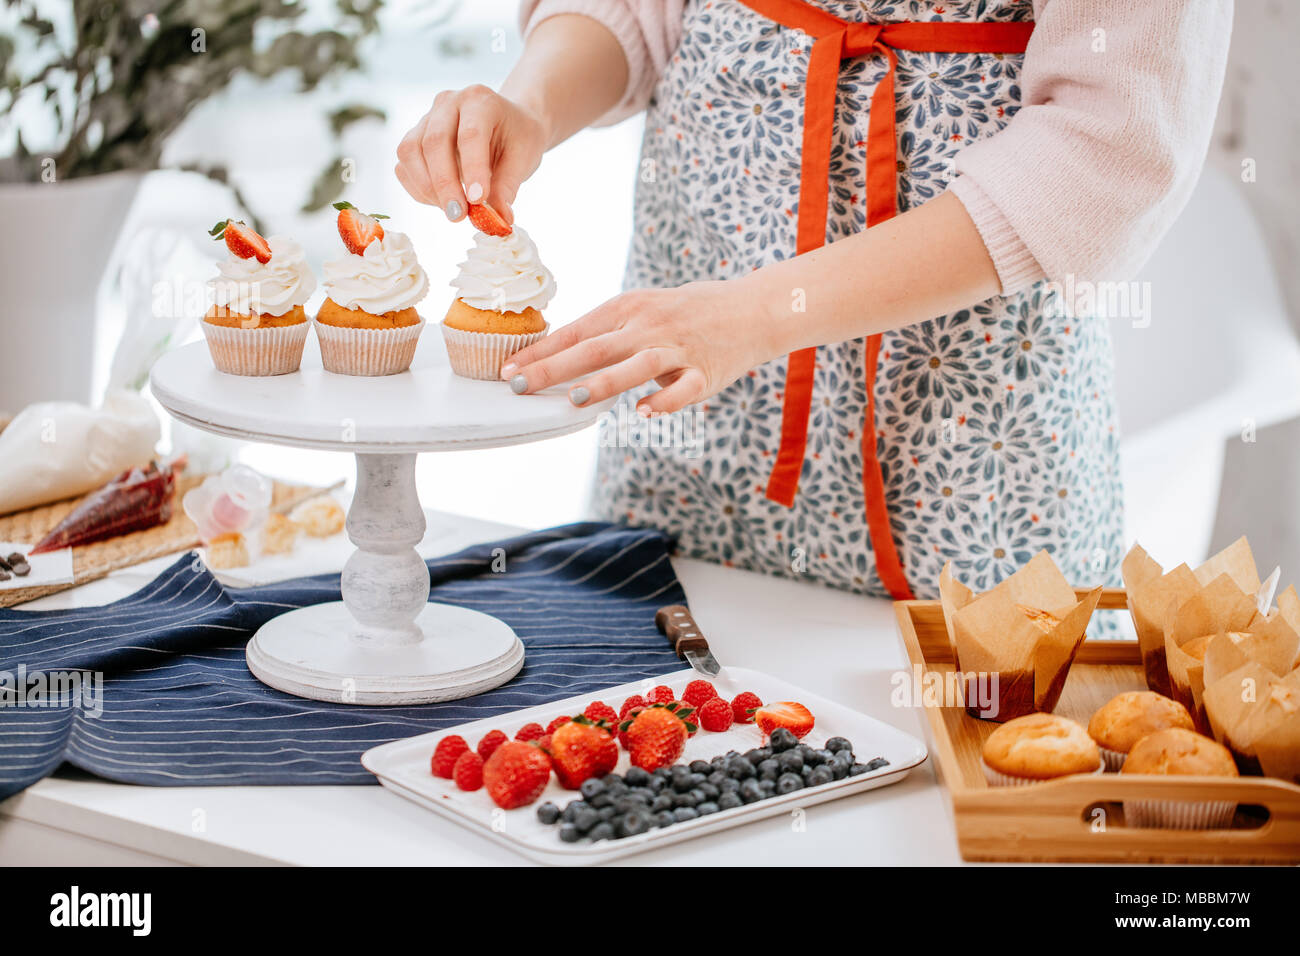 process of decorating cupcakes with berries - Stock Image